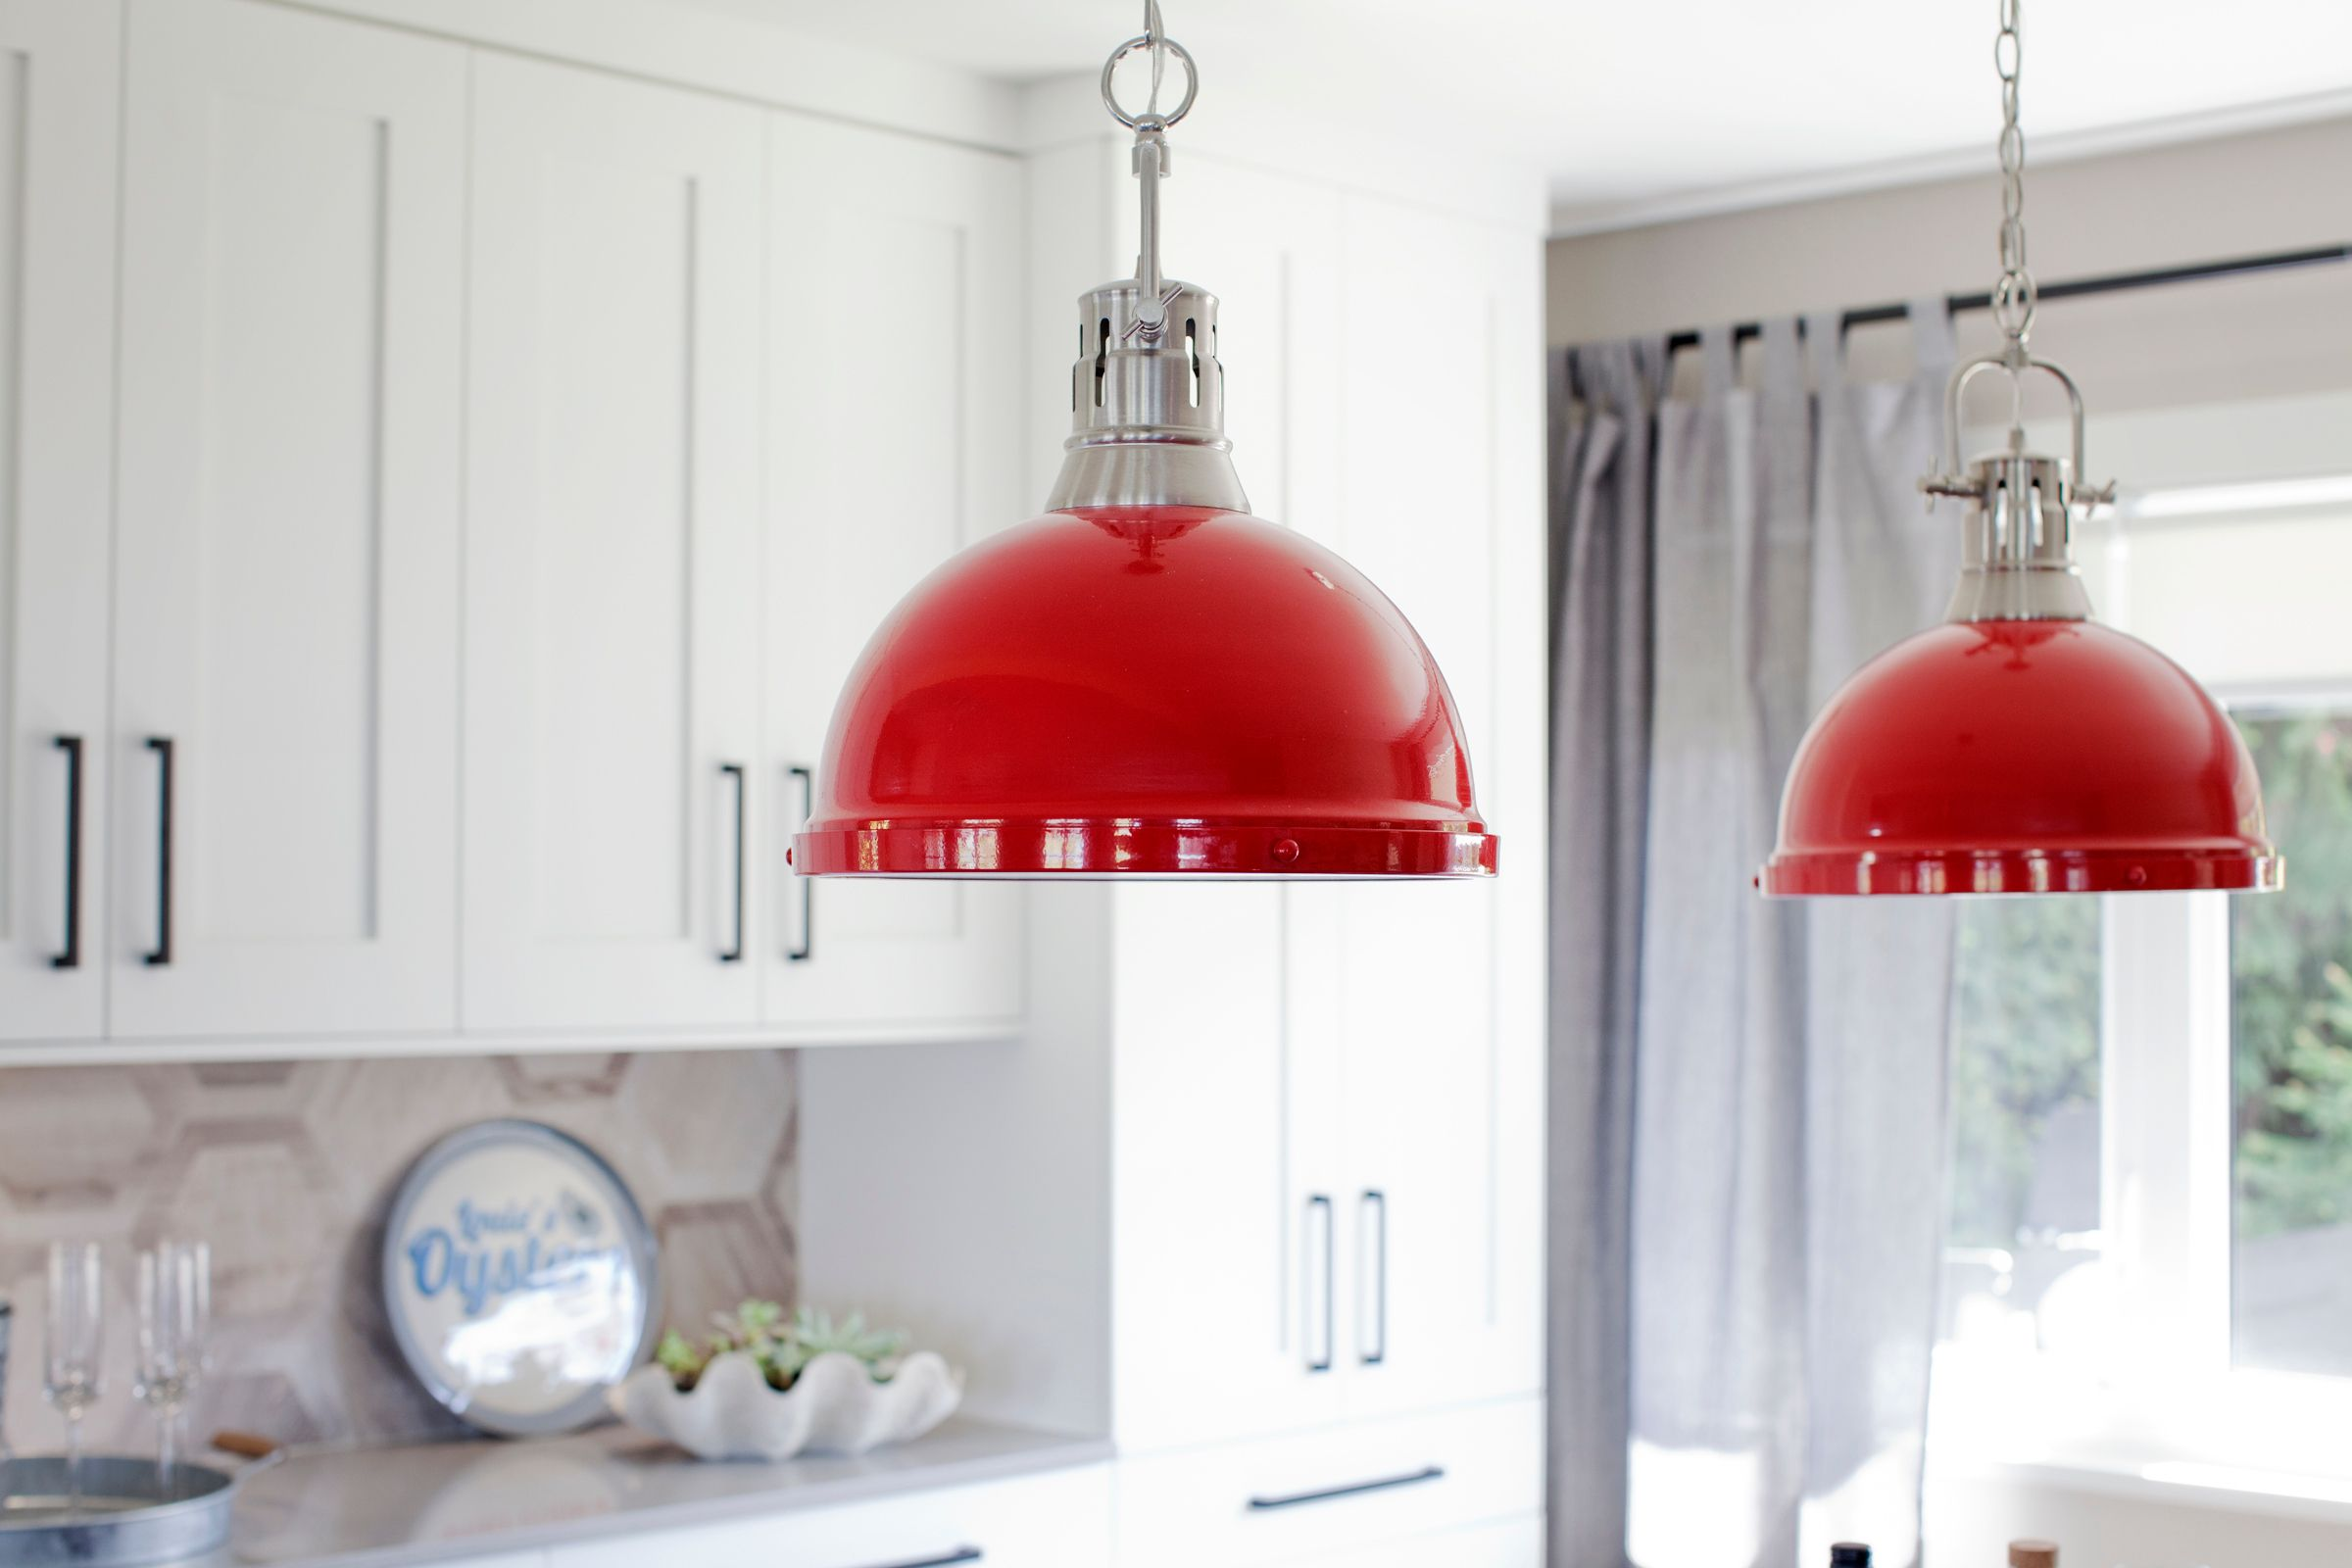 Using A Colourful Light Fixture In Your Kitchen Will Make